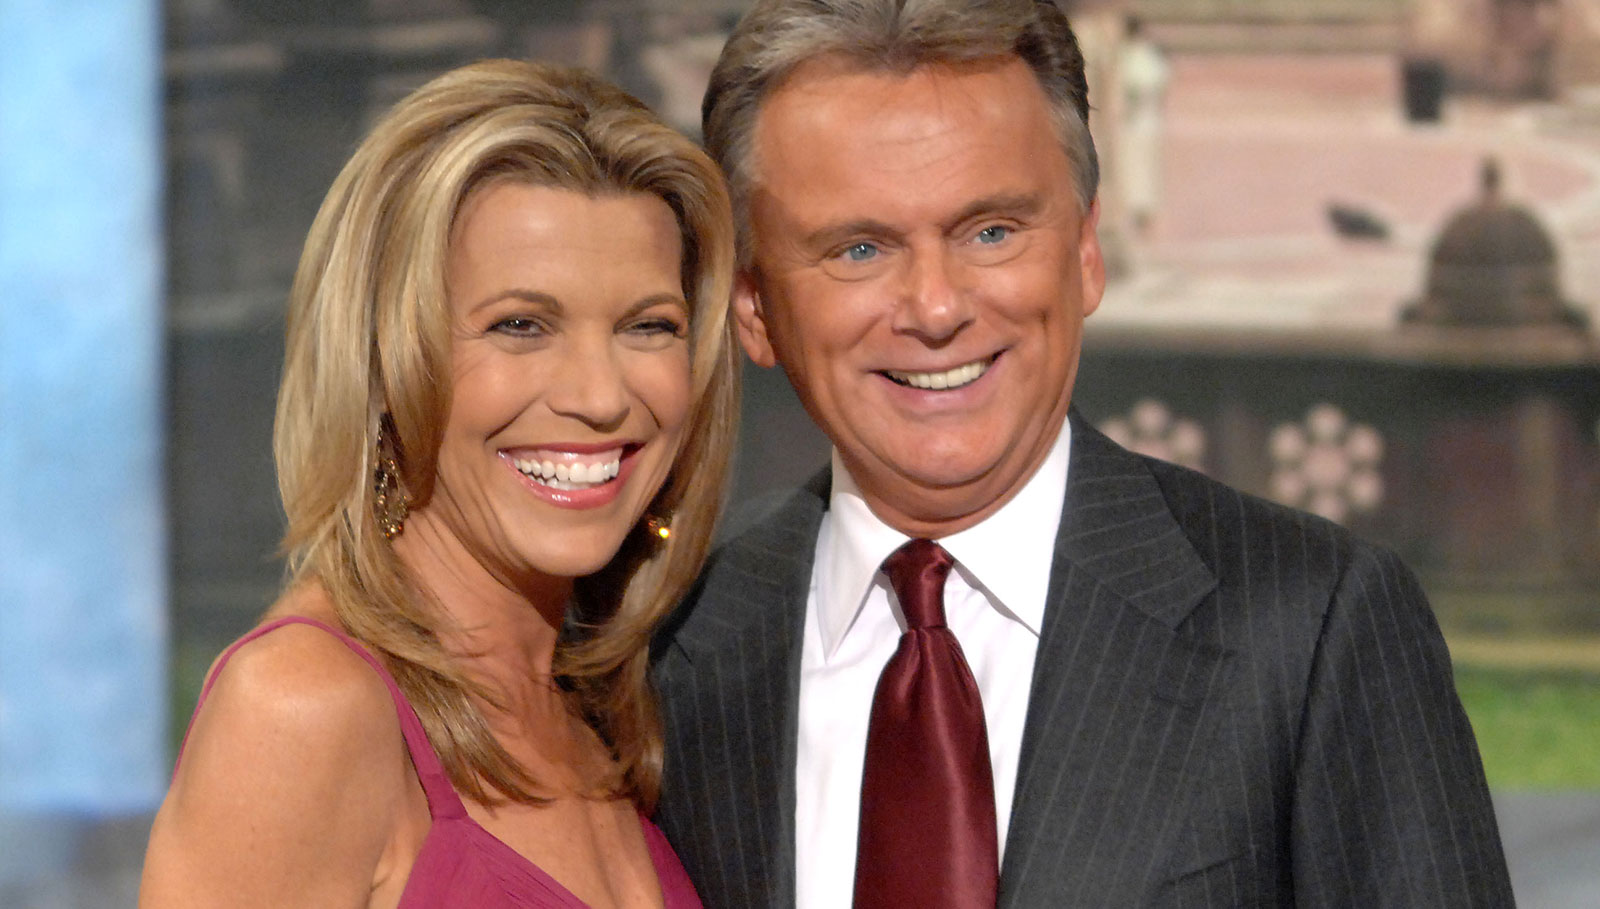 Pat sajak and vanna white give terminally ill wheel fan ultimate